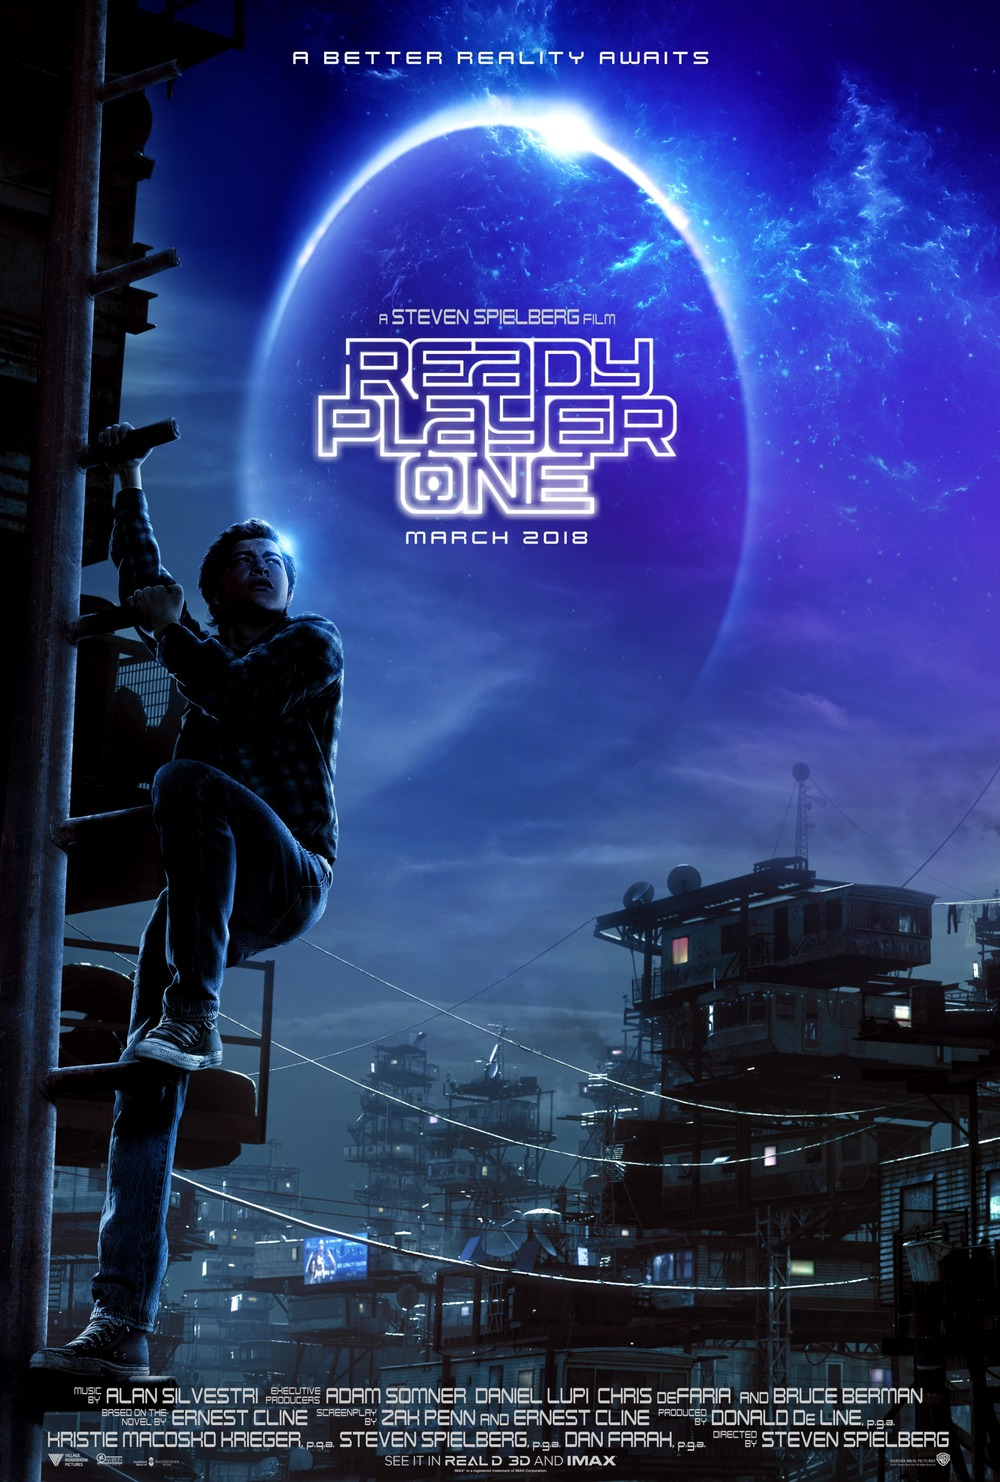 Ready player one movie release date in Sydney